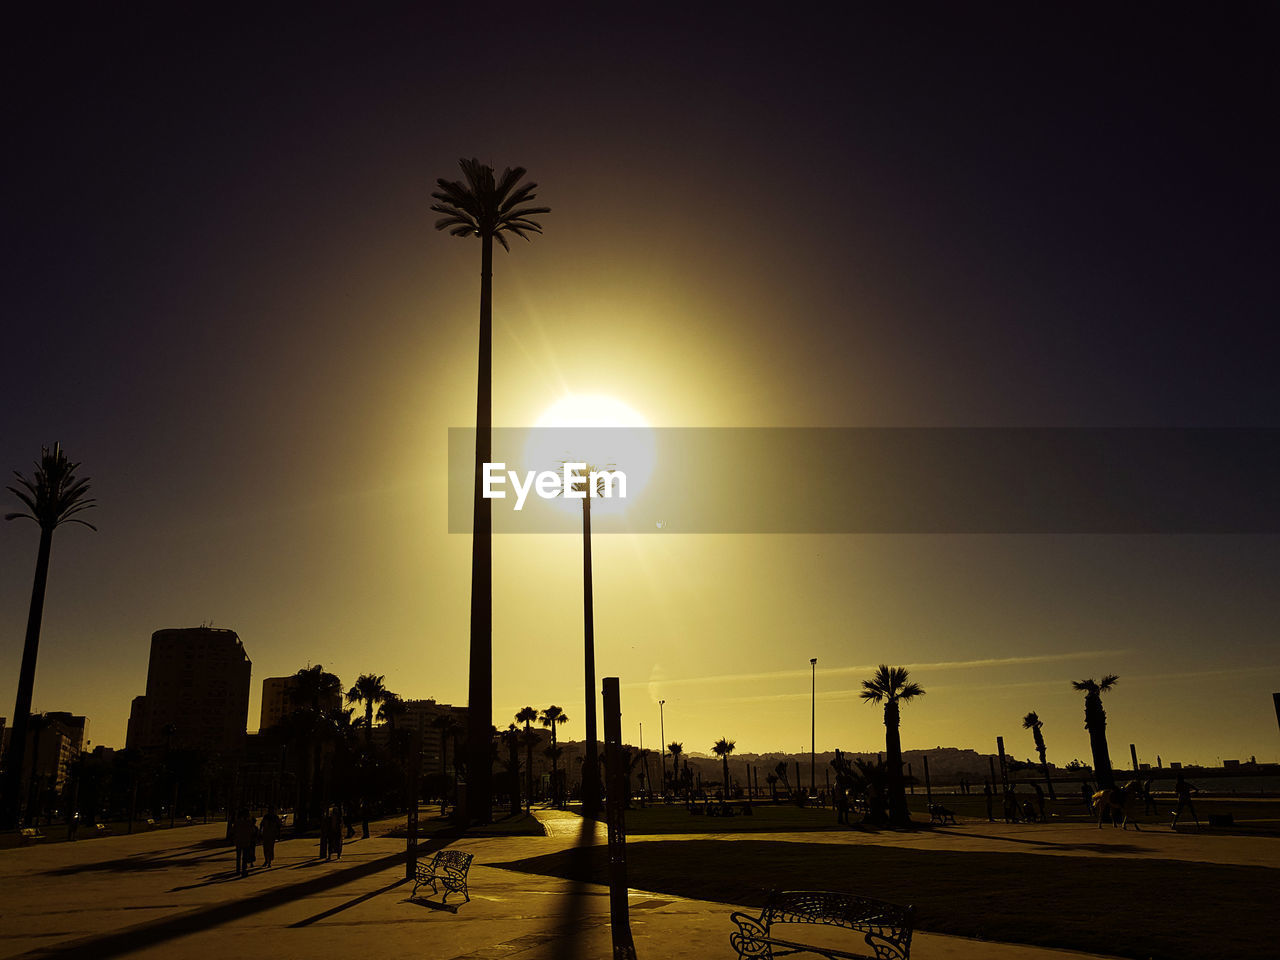 SILHOUETTE OF STREET LIGHT AND PALM TREE AGAINST SKY